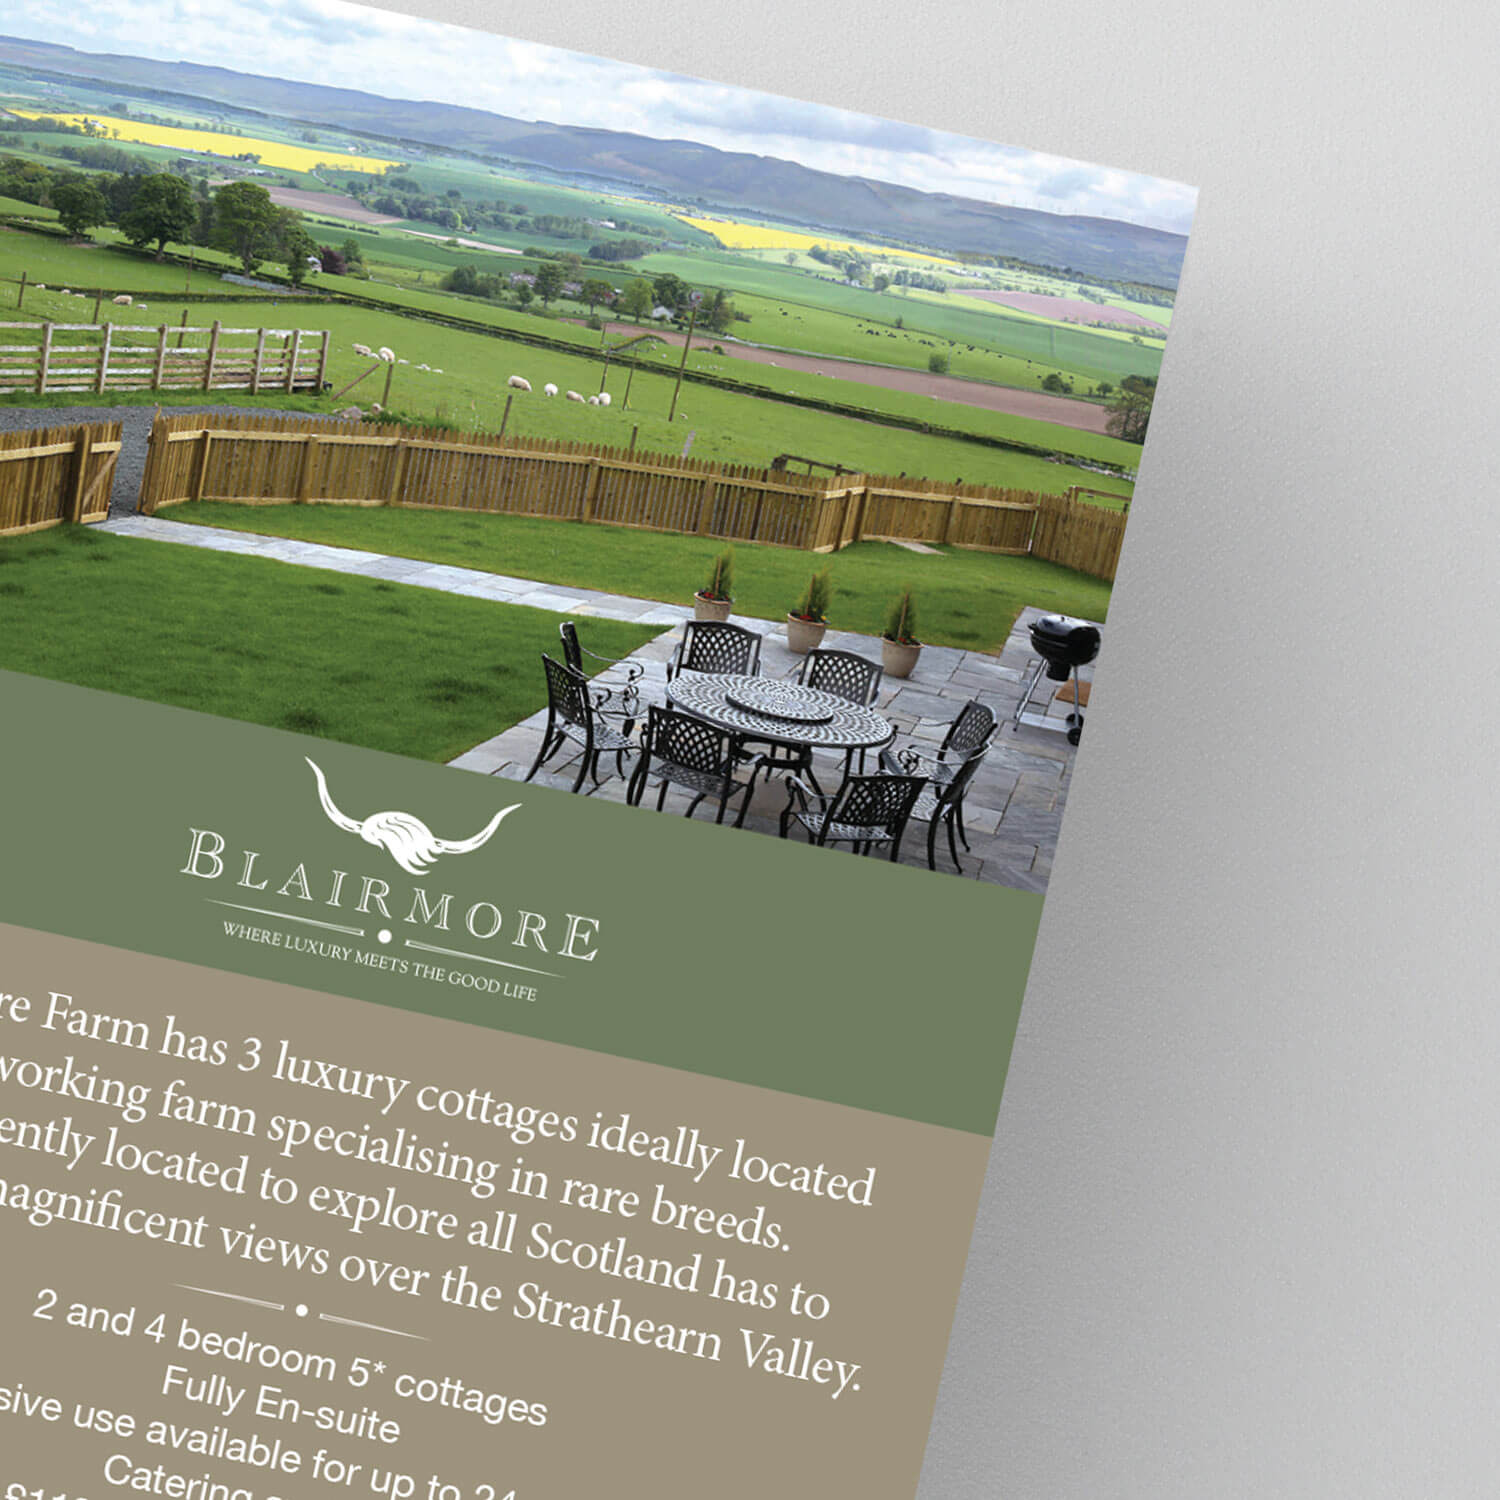 blairmore catalogue showing a lawn